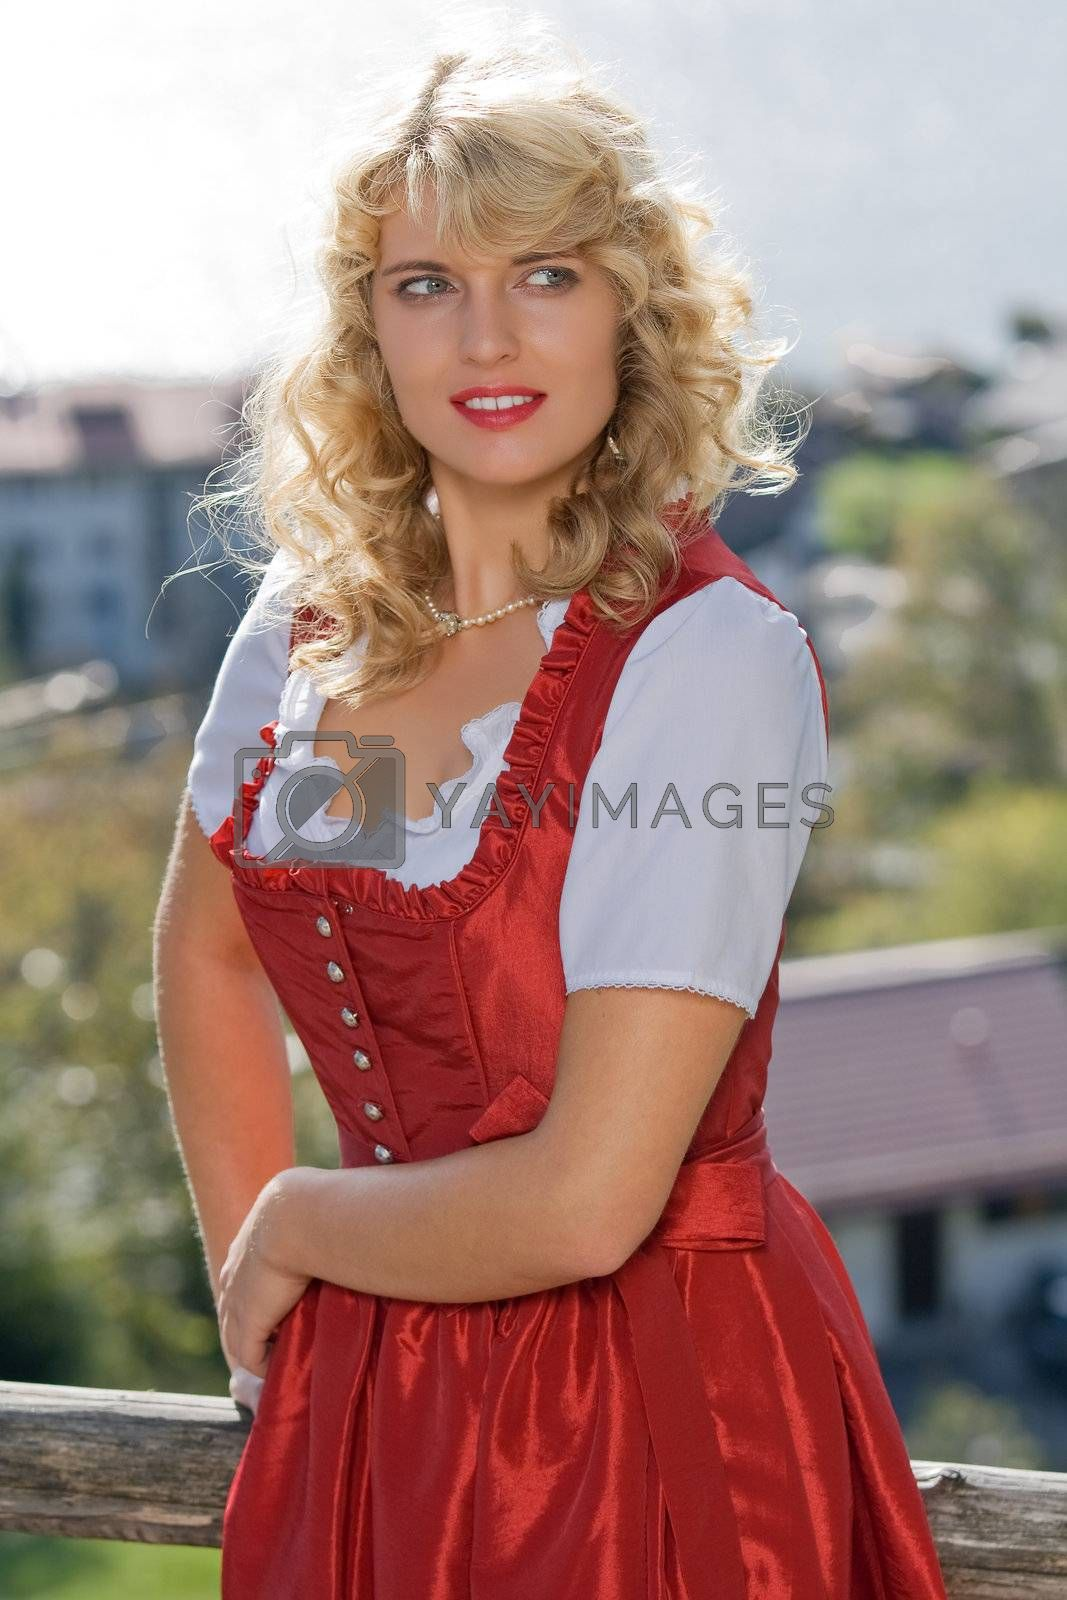 young blond woman in red Bavarian dress